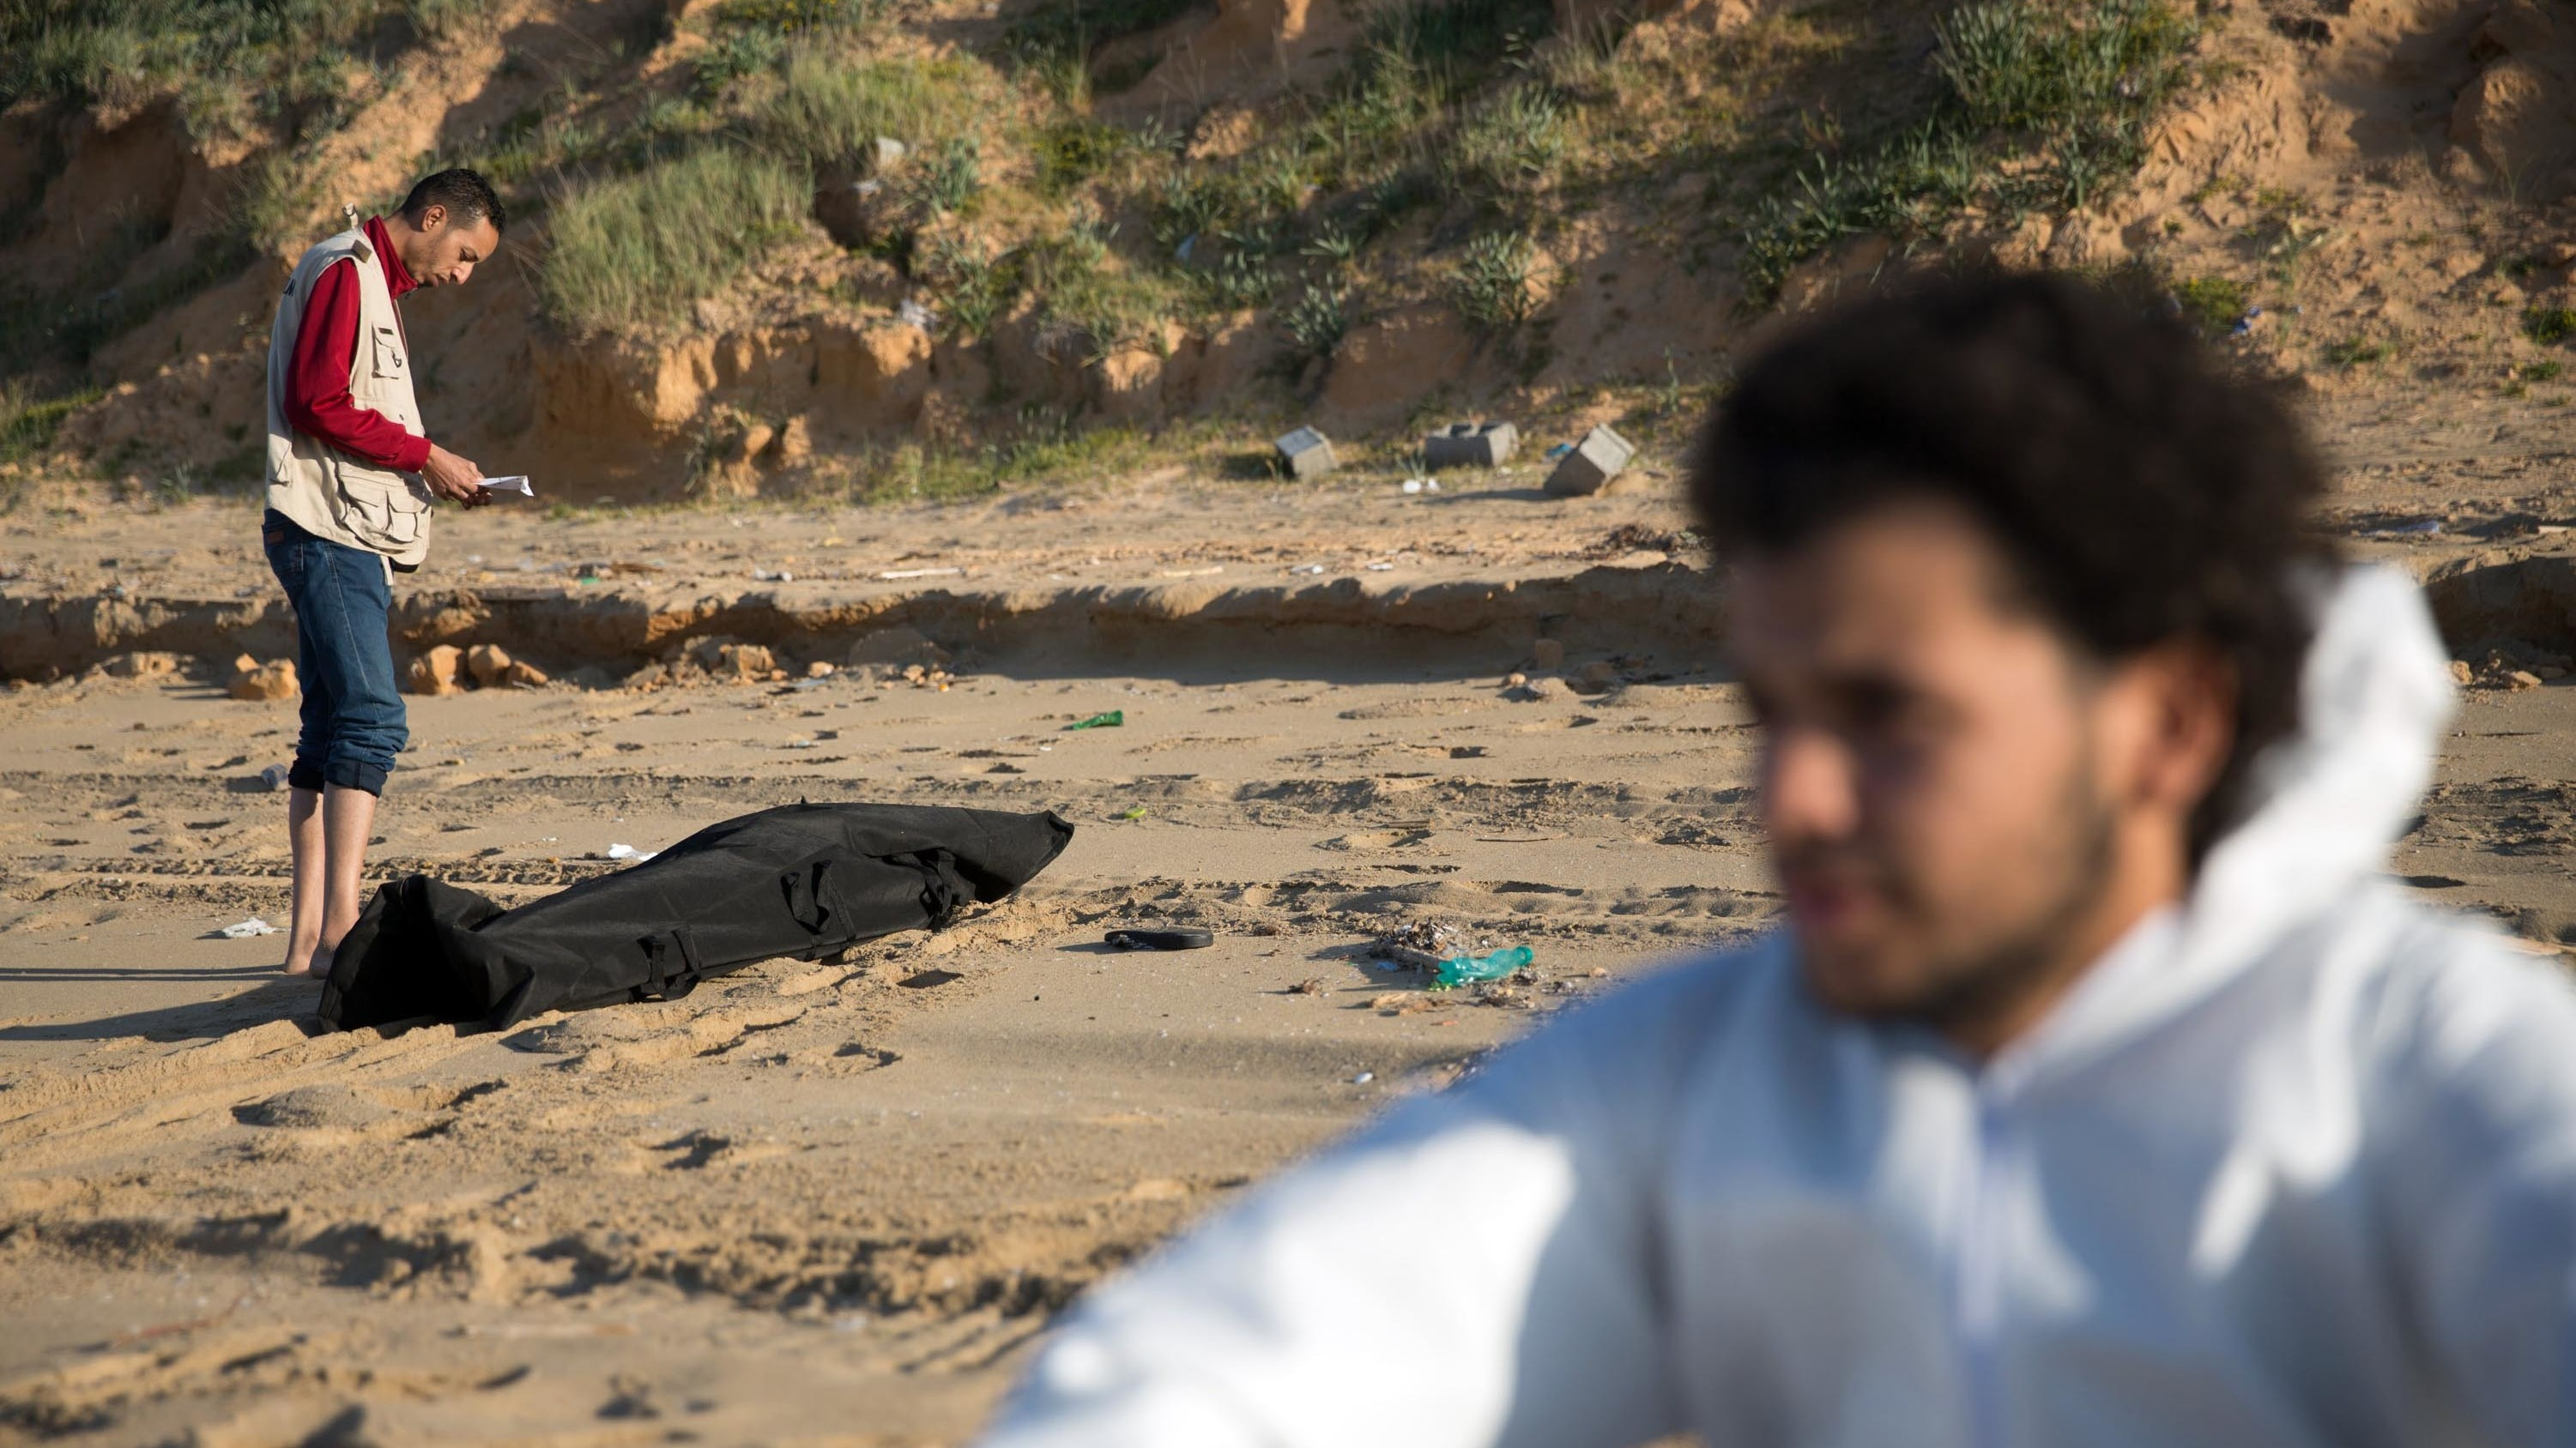 The Bodies of 133 Drowned Migrants Have Washed Ashore in Libya